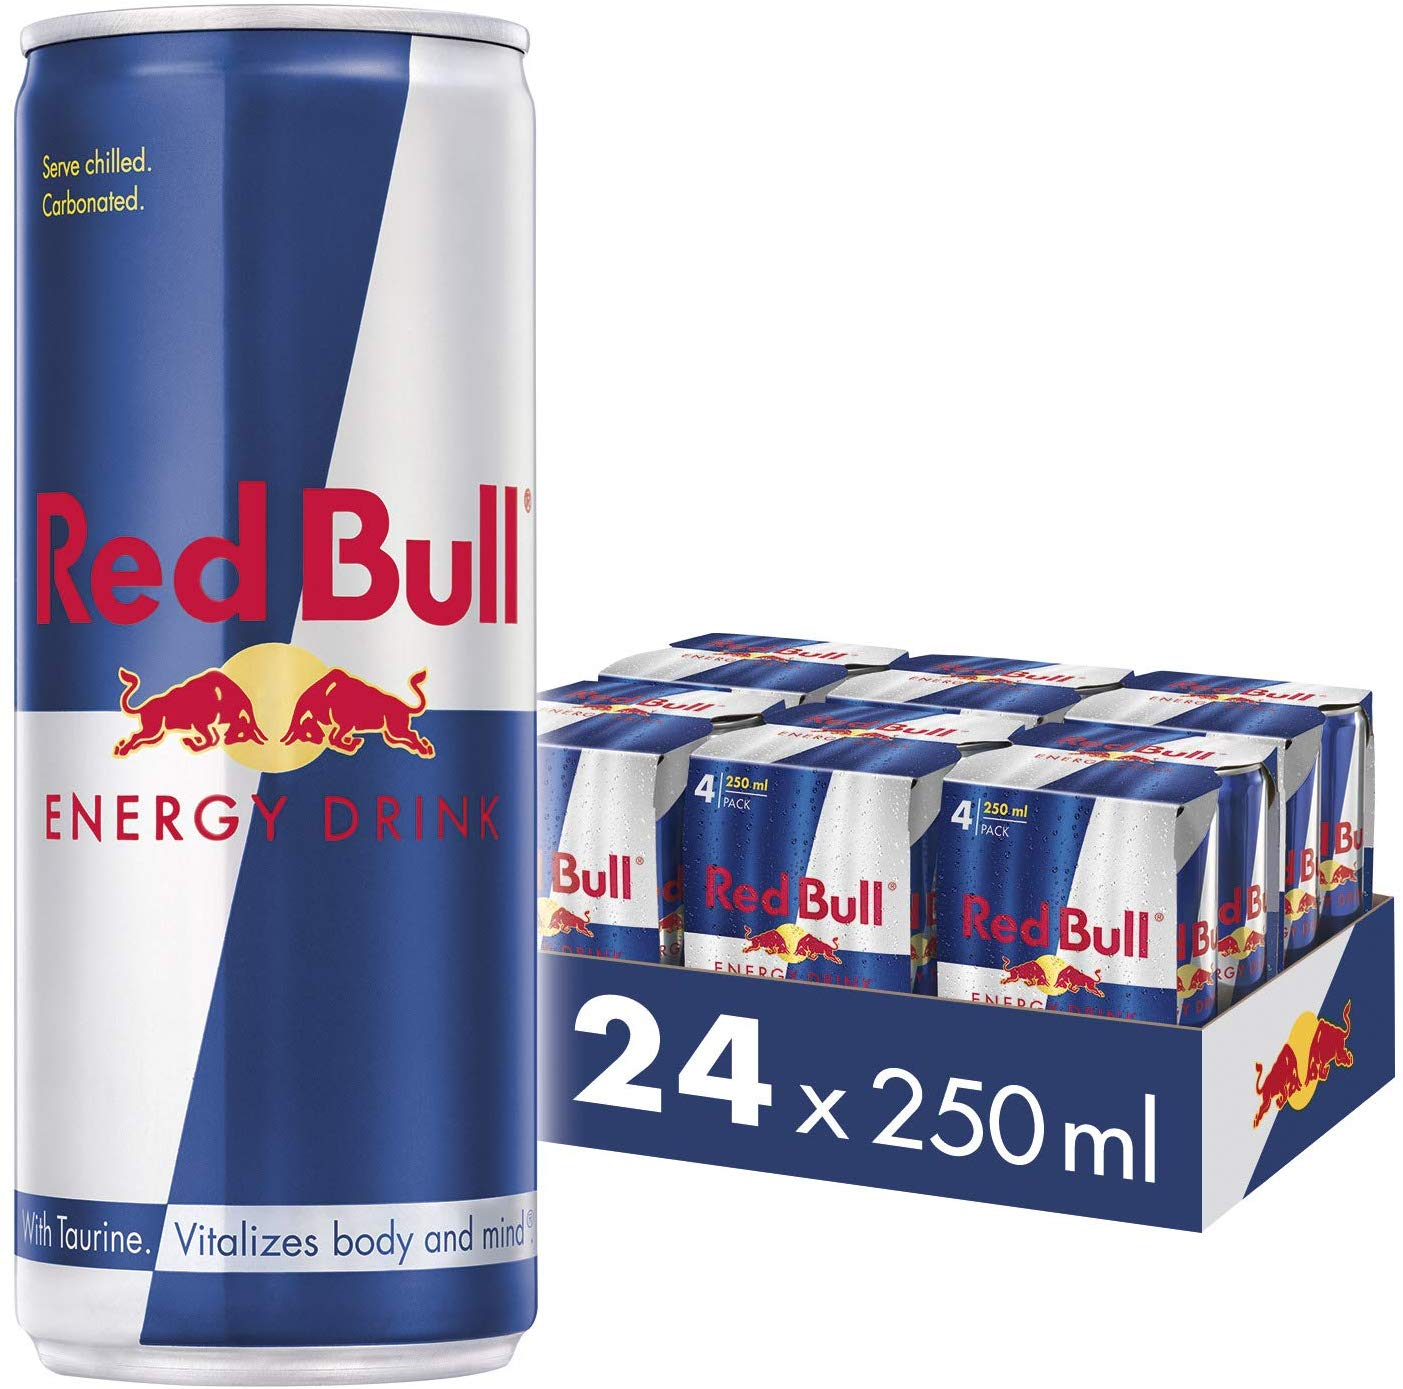 33% off Red Bull Energy Drink 24 Pack of 250 ml